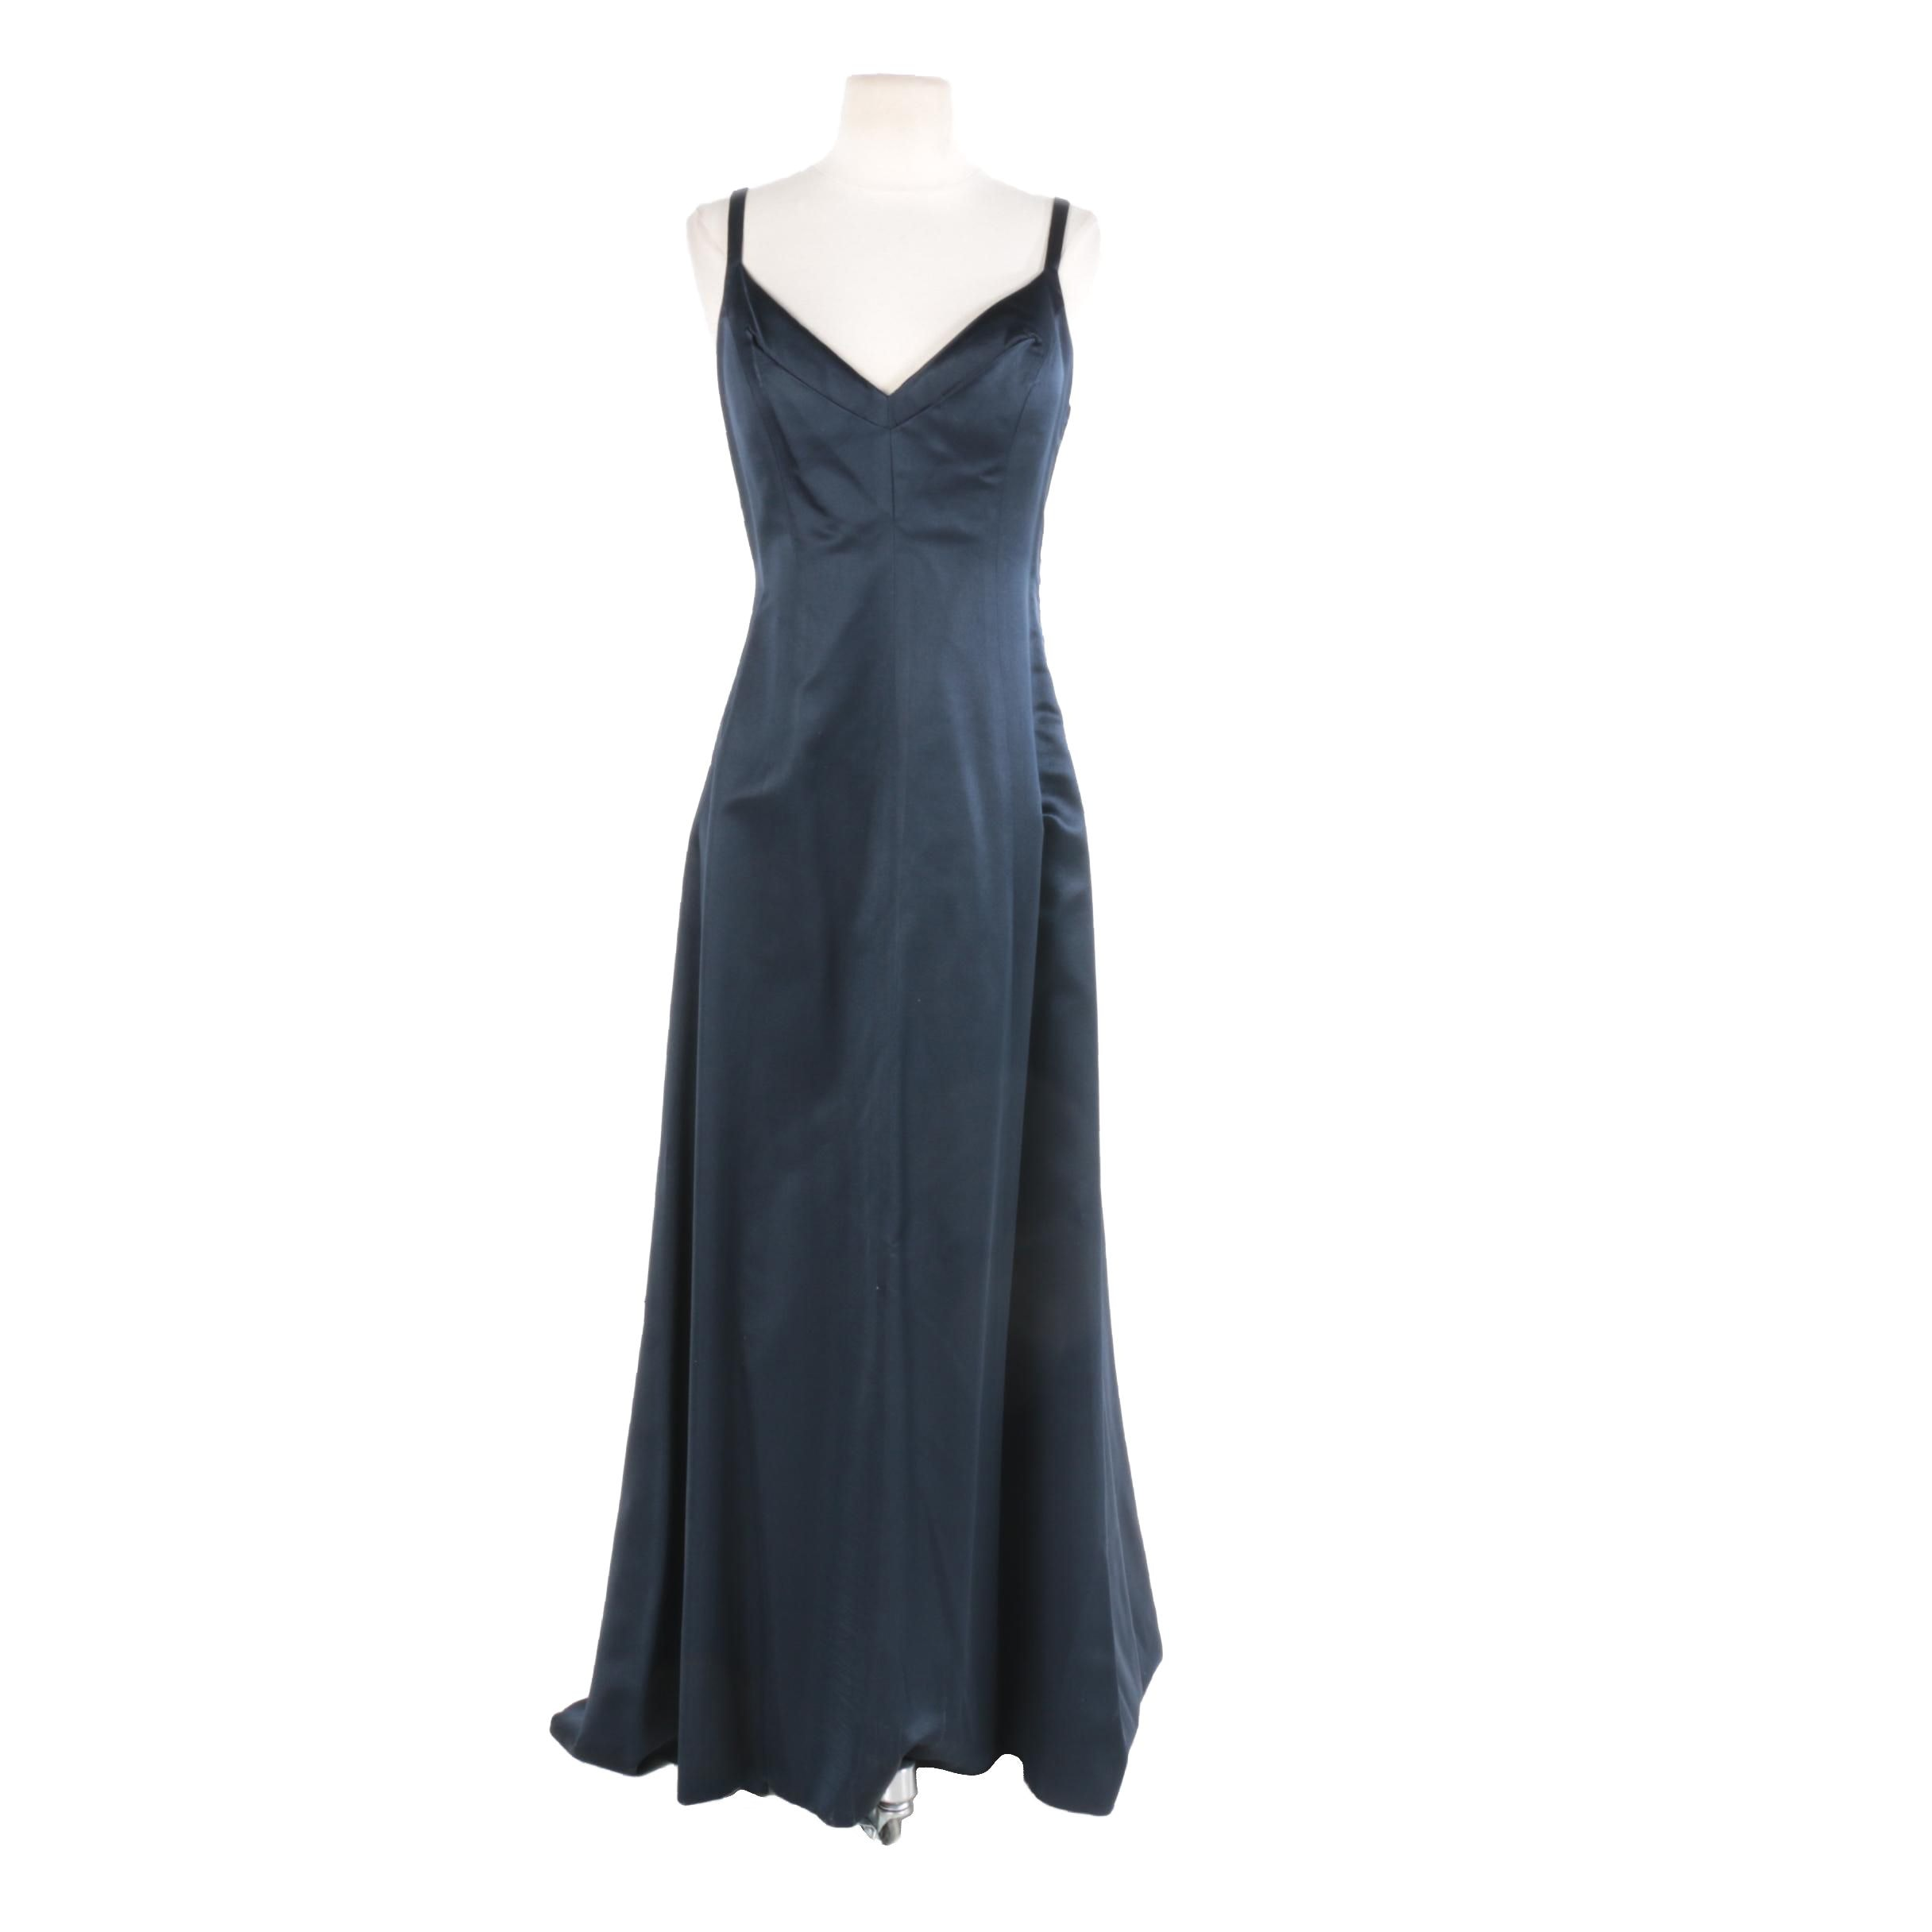 Richard Tyler Navy Blue Satin Sleeveless Evening Dress